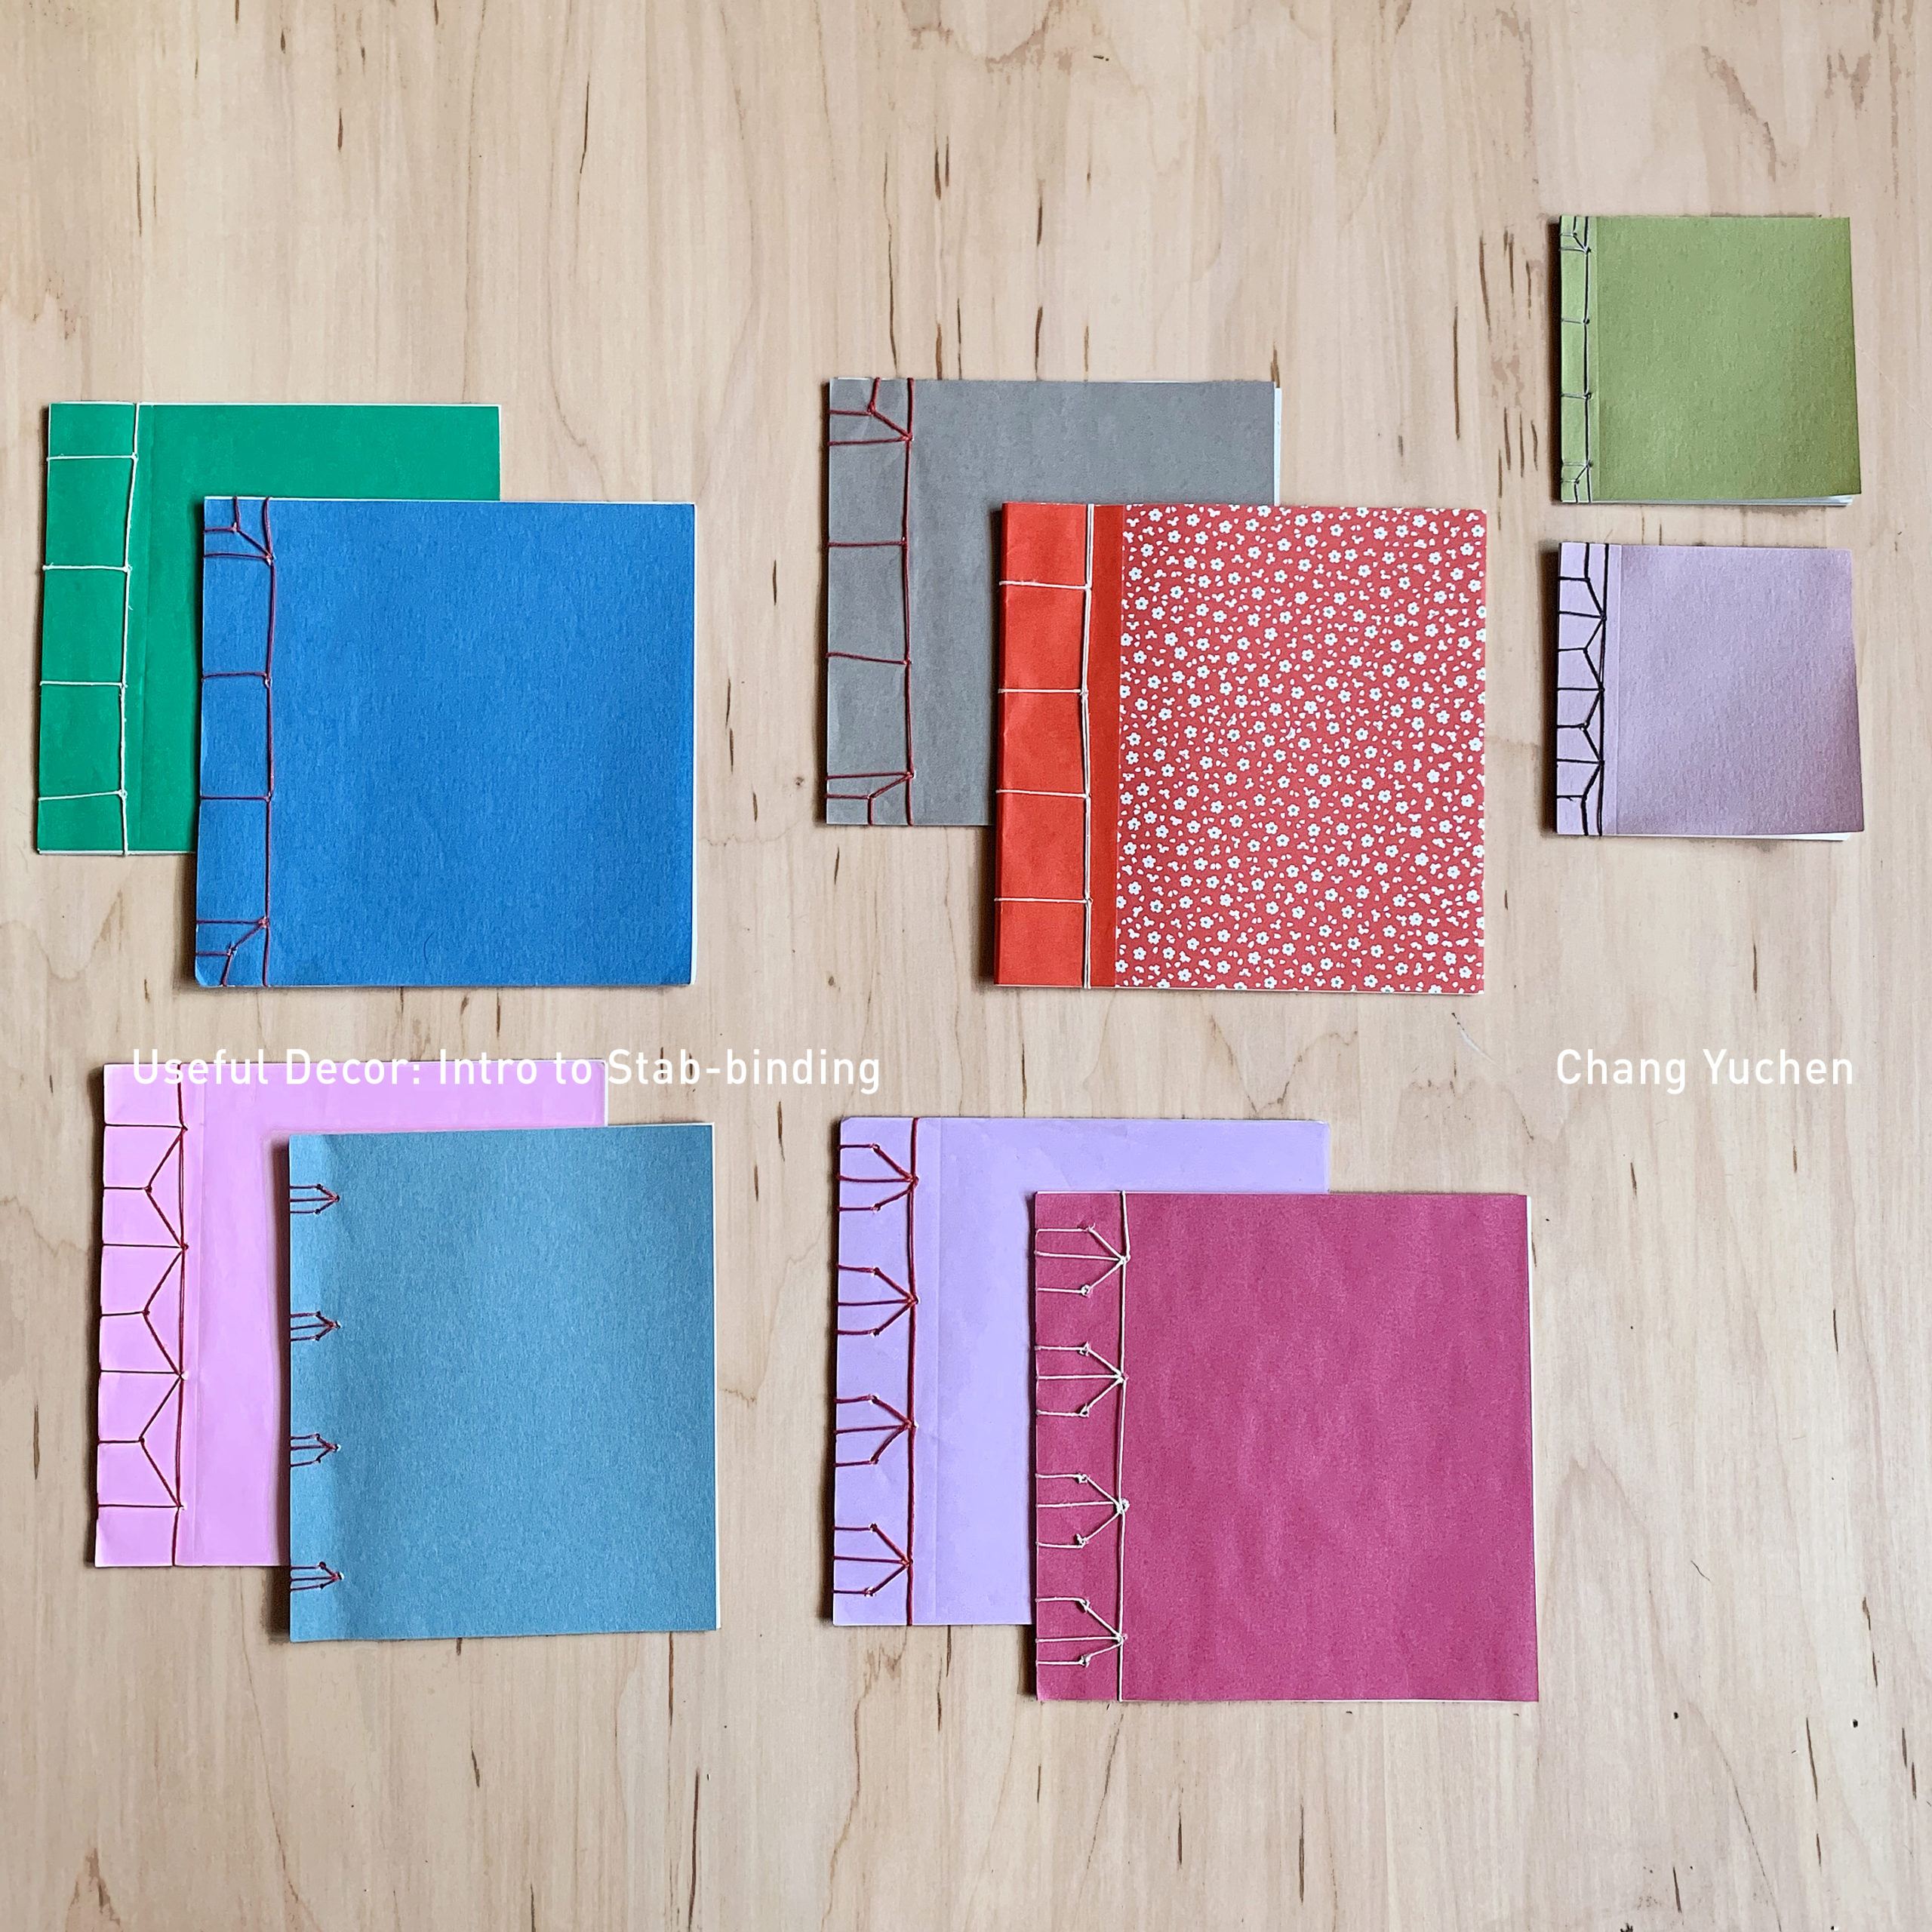 """Ten stab-bound books with colorful covers are spread out on a table. """"Useful Decor: Intro to Stab-binding"""" and """"Chang Yuchen"""" are typed across the image."""